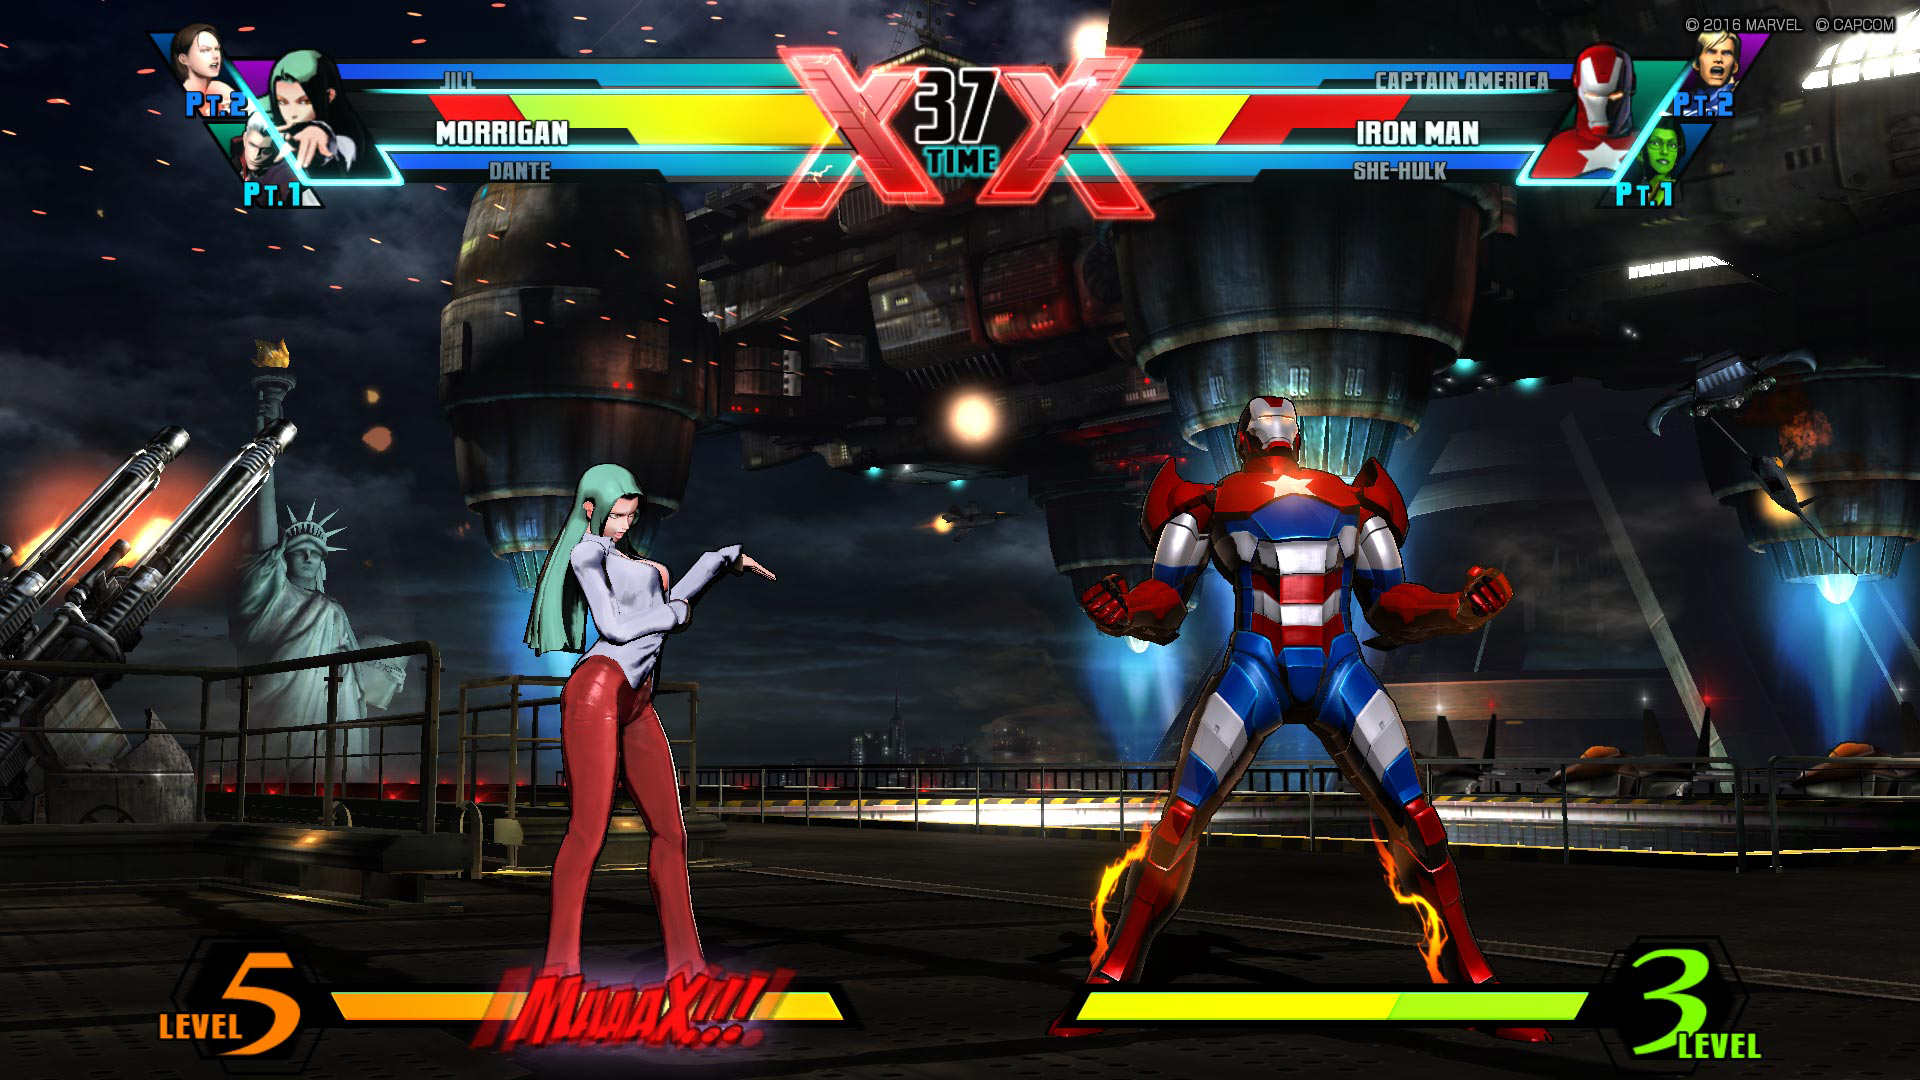 『ULTIMATE MARVEL VS. CAPCOM 3』ゲーム画面